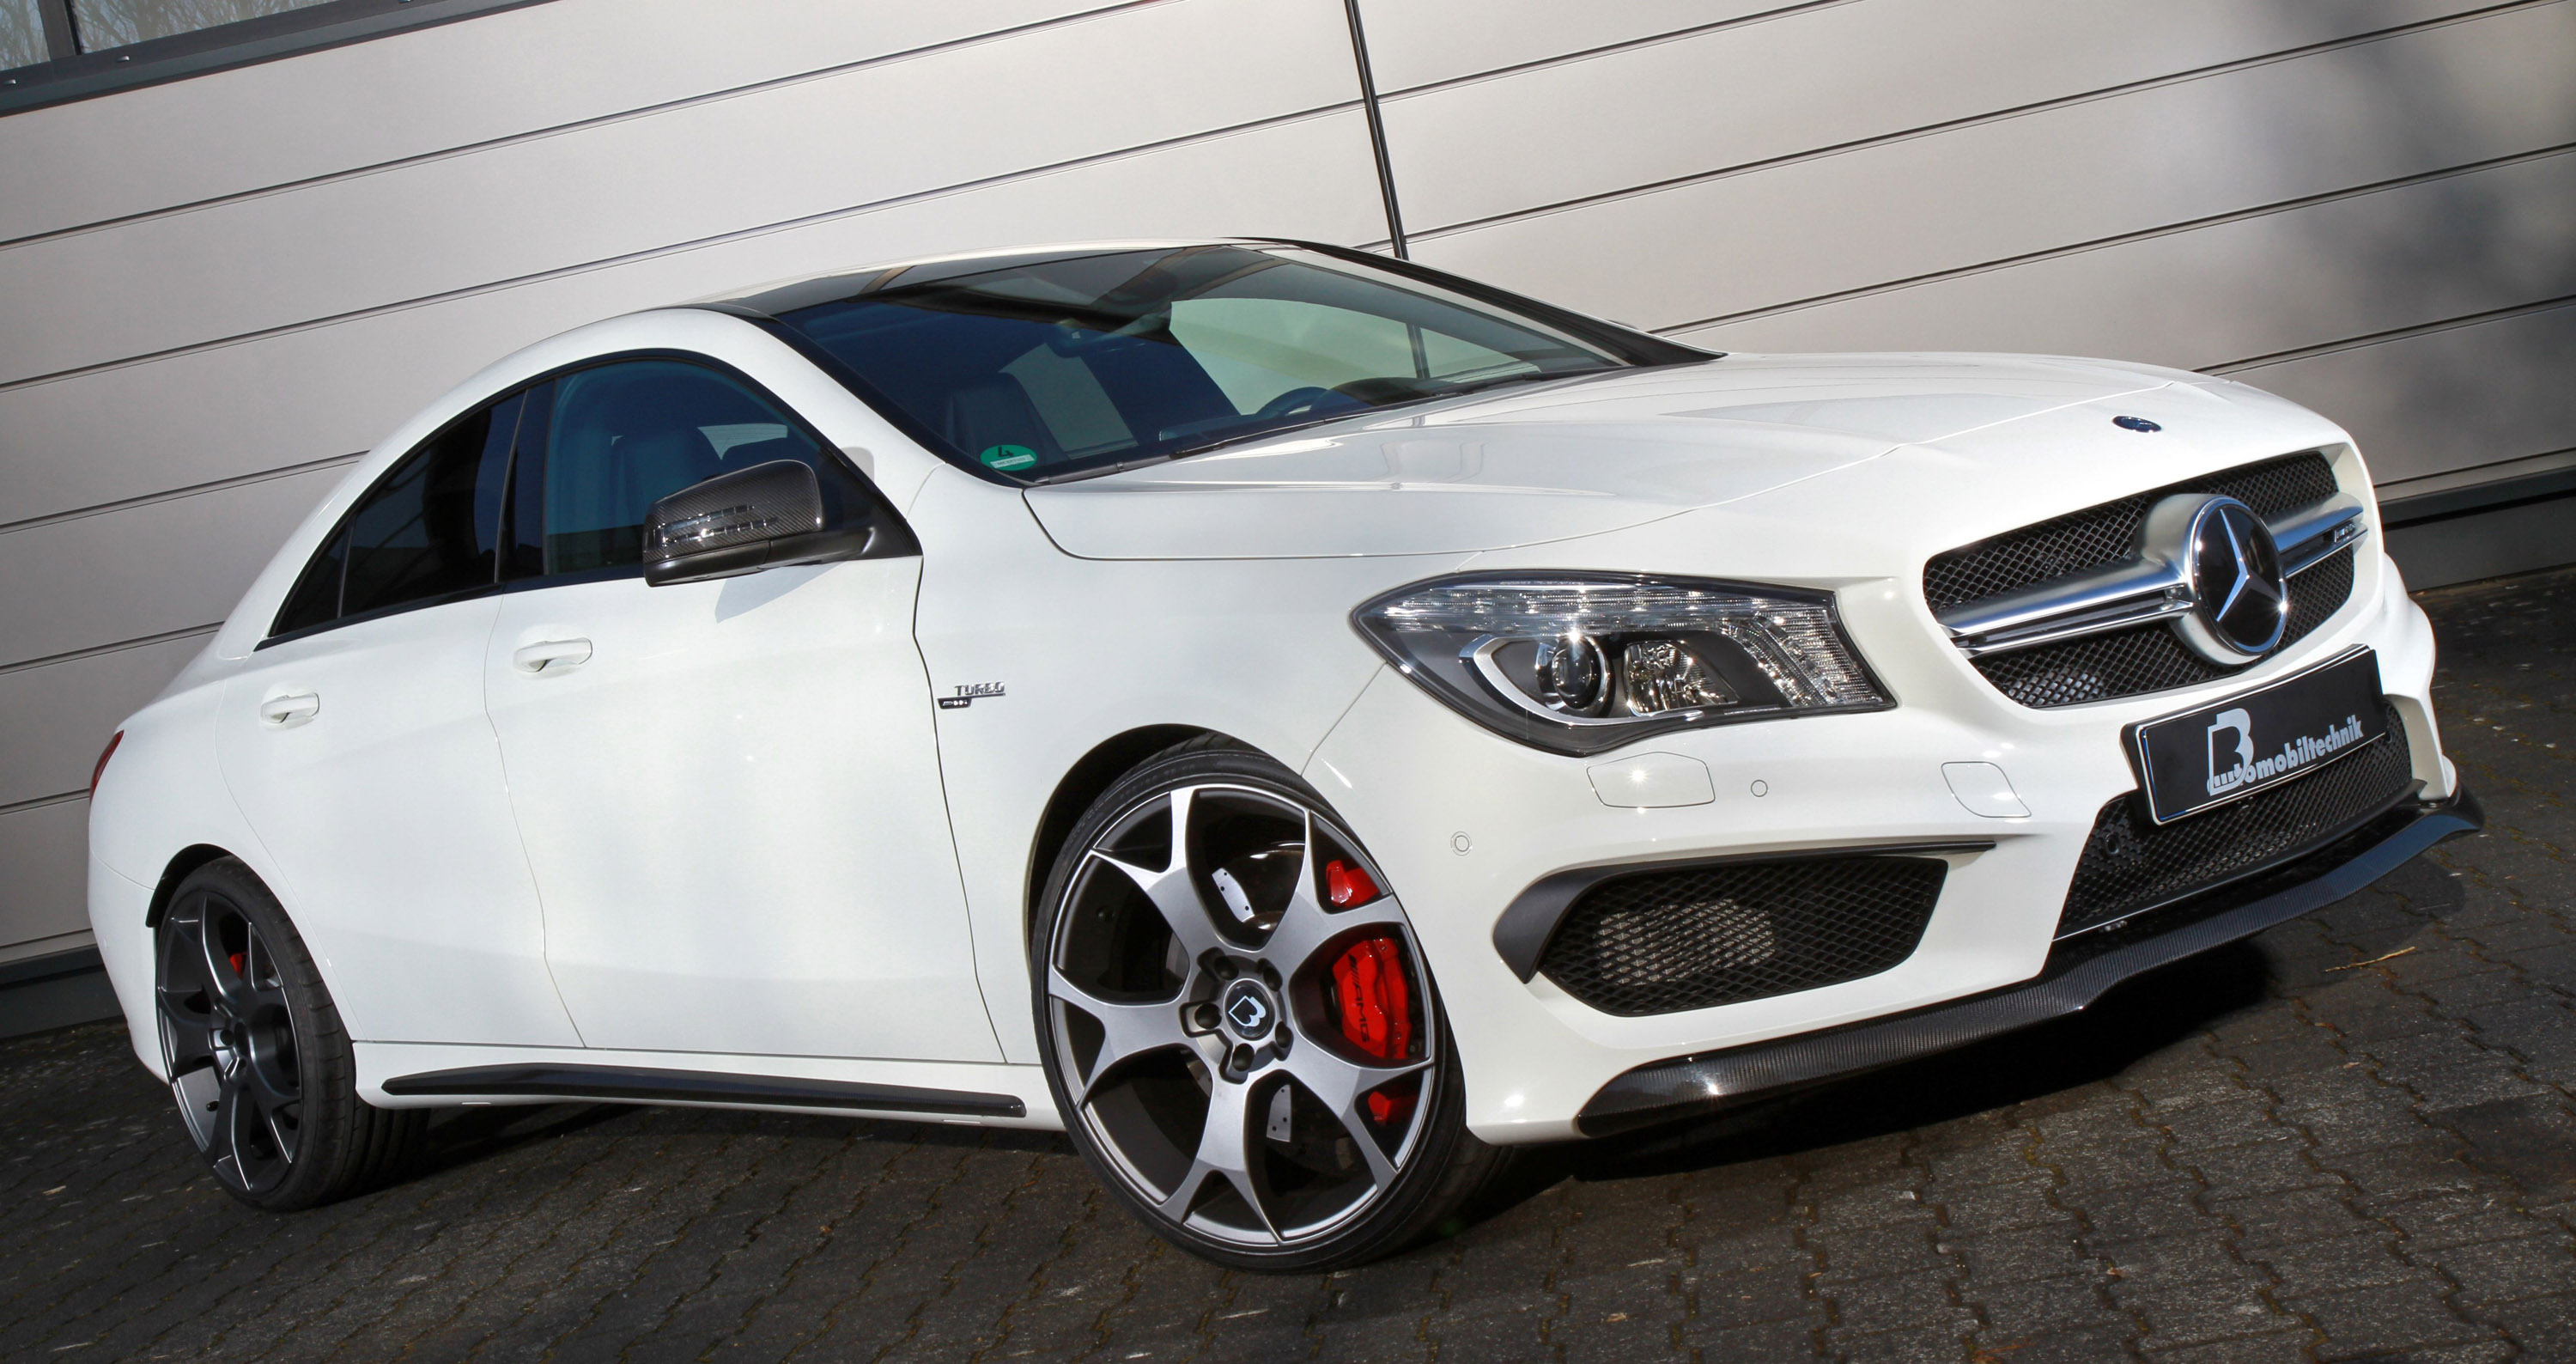 B b mercedes benz cla 45 amg is capable of up to 450 hp 580 nm for Mercedes benz amg cla 45